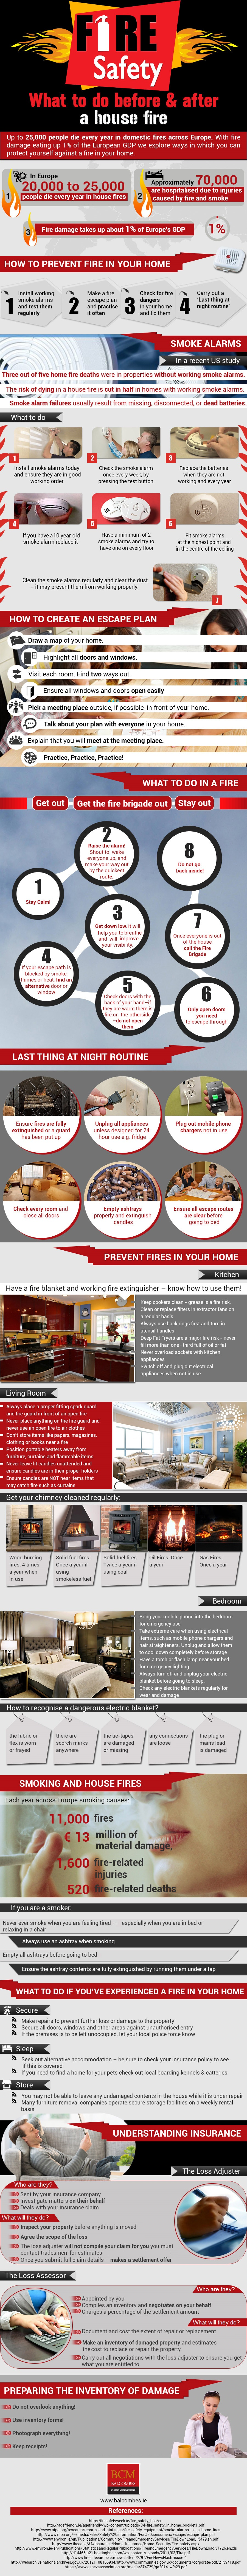 Fire Safety in the Home - Infographic